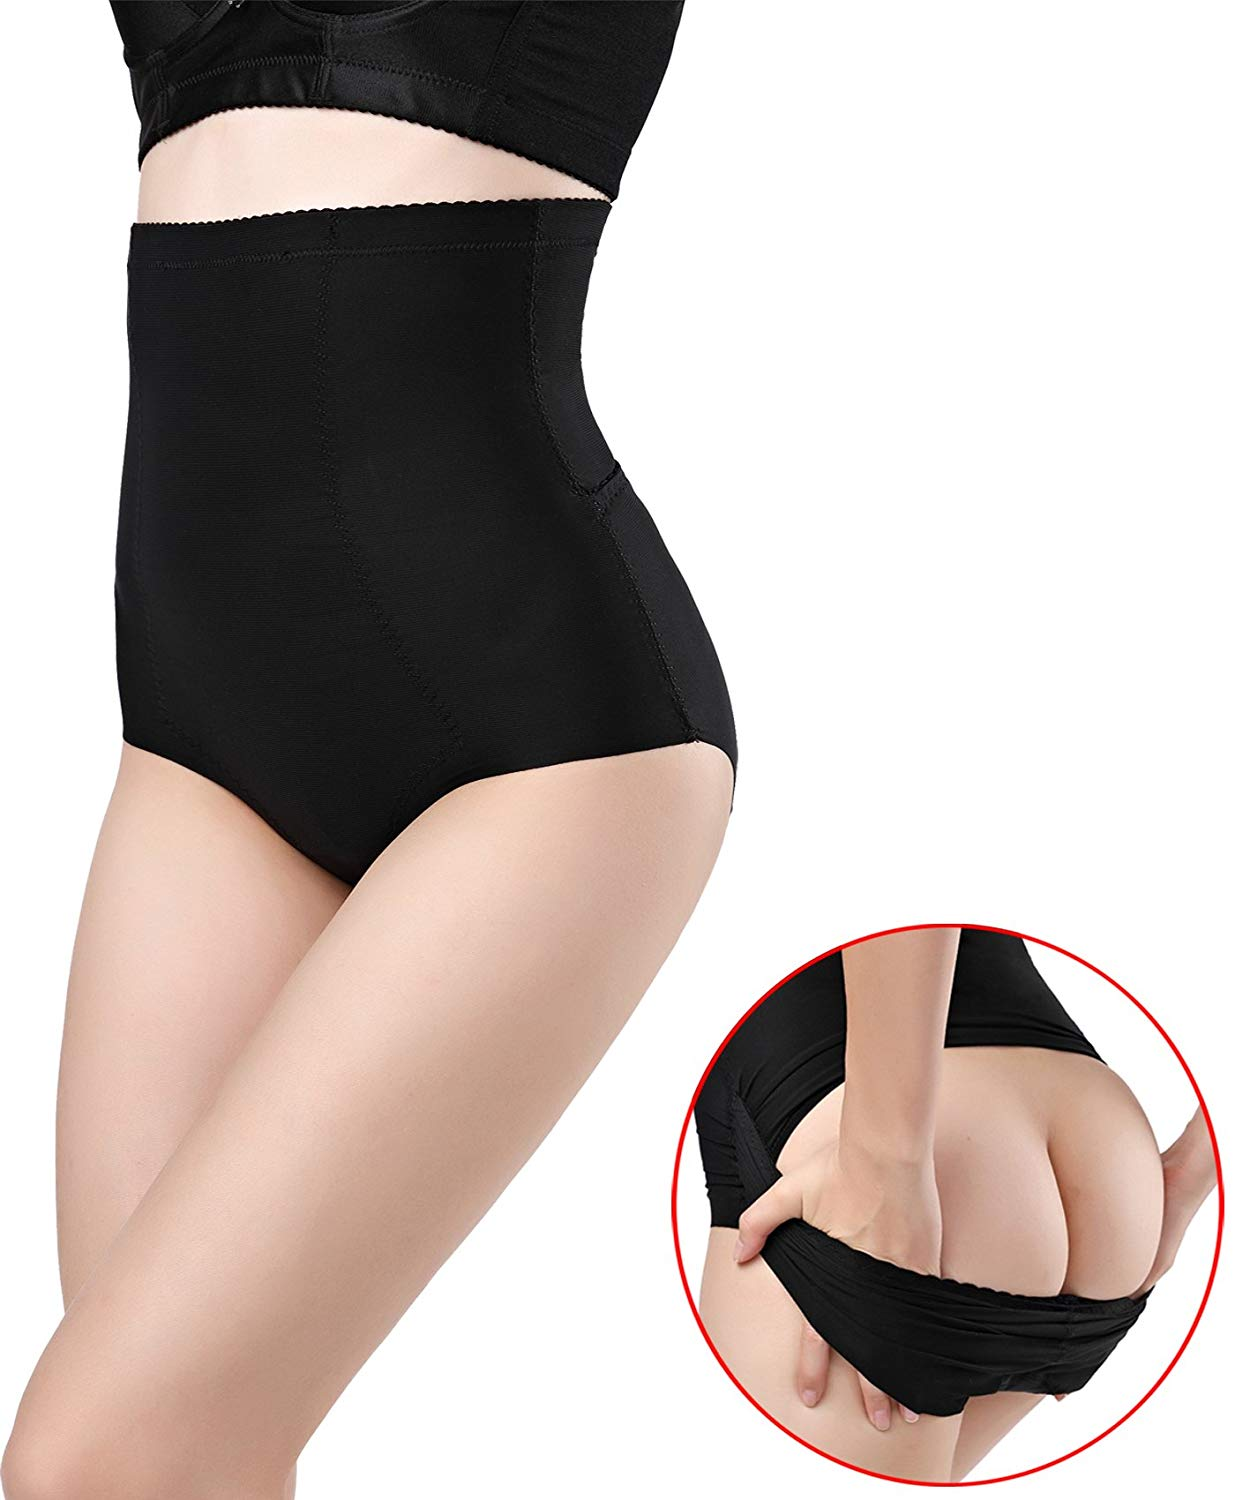 b78891e75db05 Get Quotations · DODOING Slimming Panty Postpartum Underwear Seamless Body  Belly Shaper Invisible Butt Lifter Tummy Control Panties High